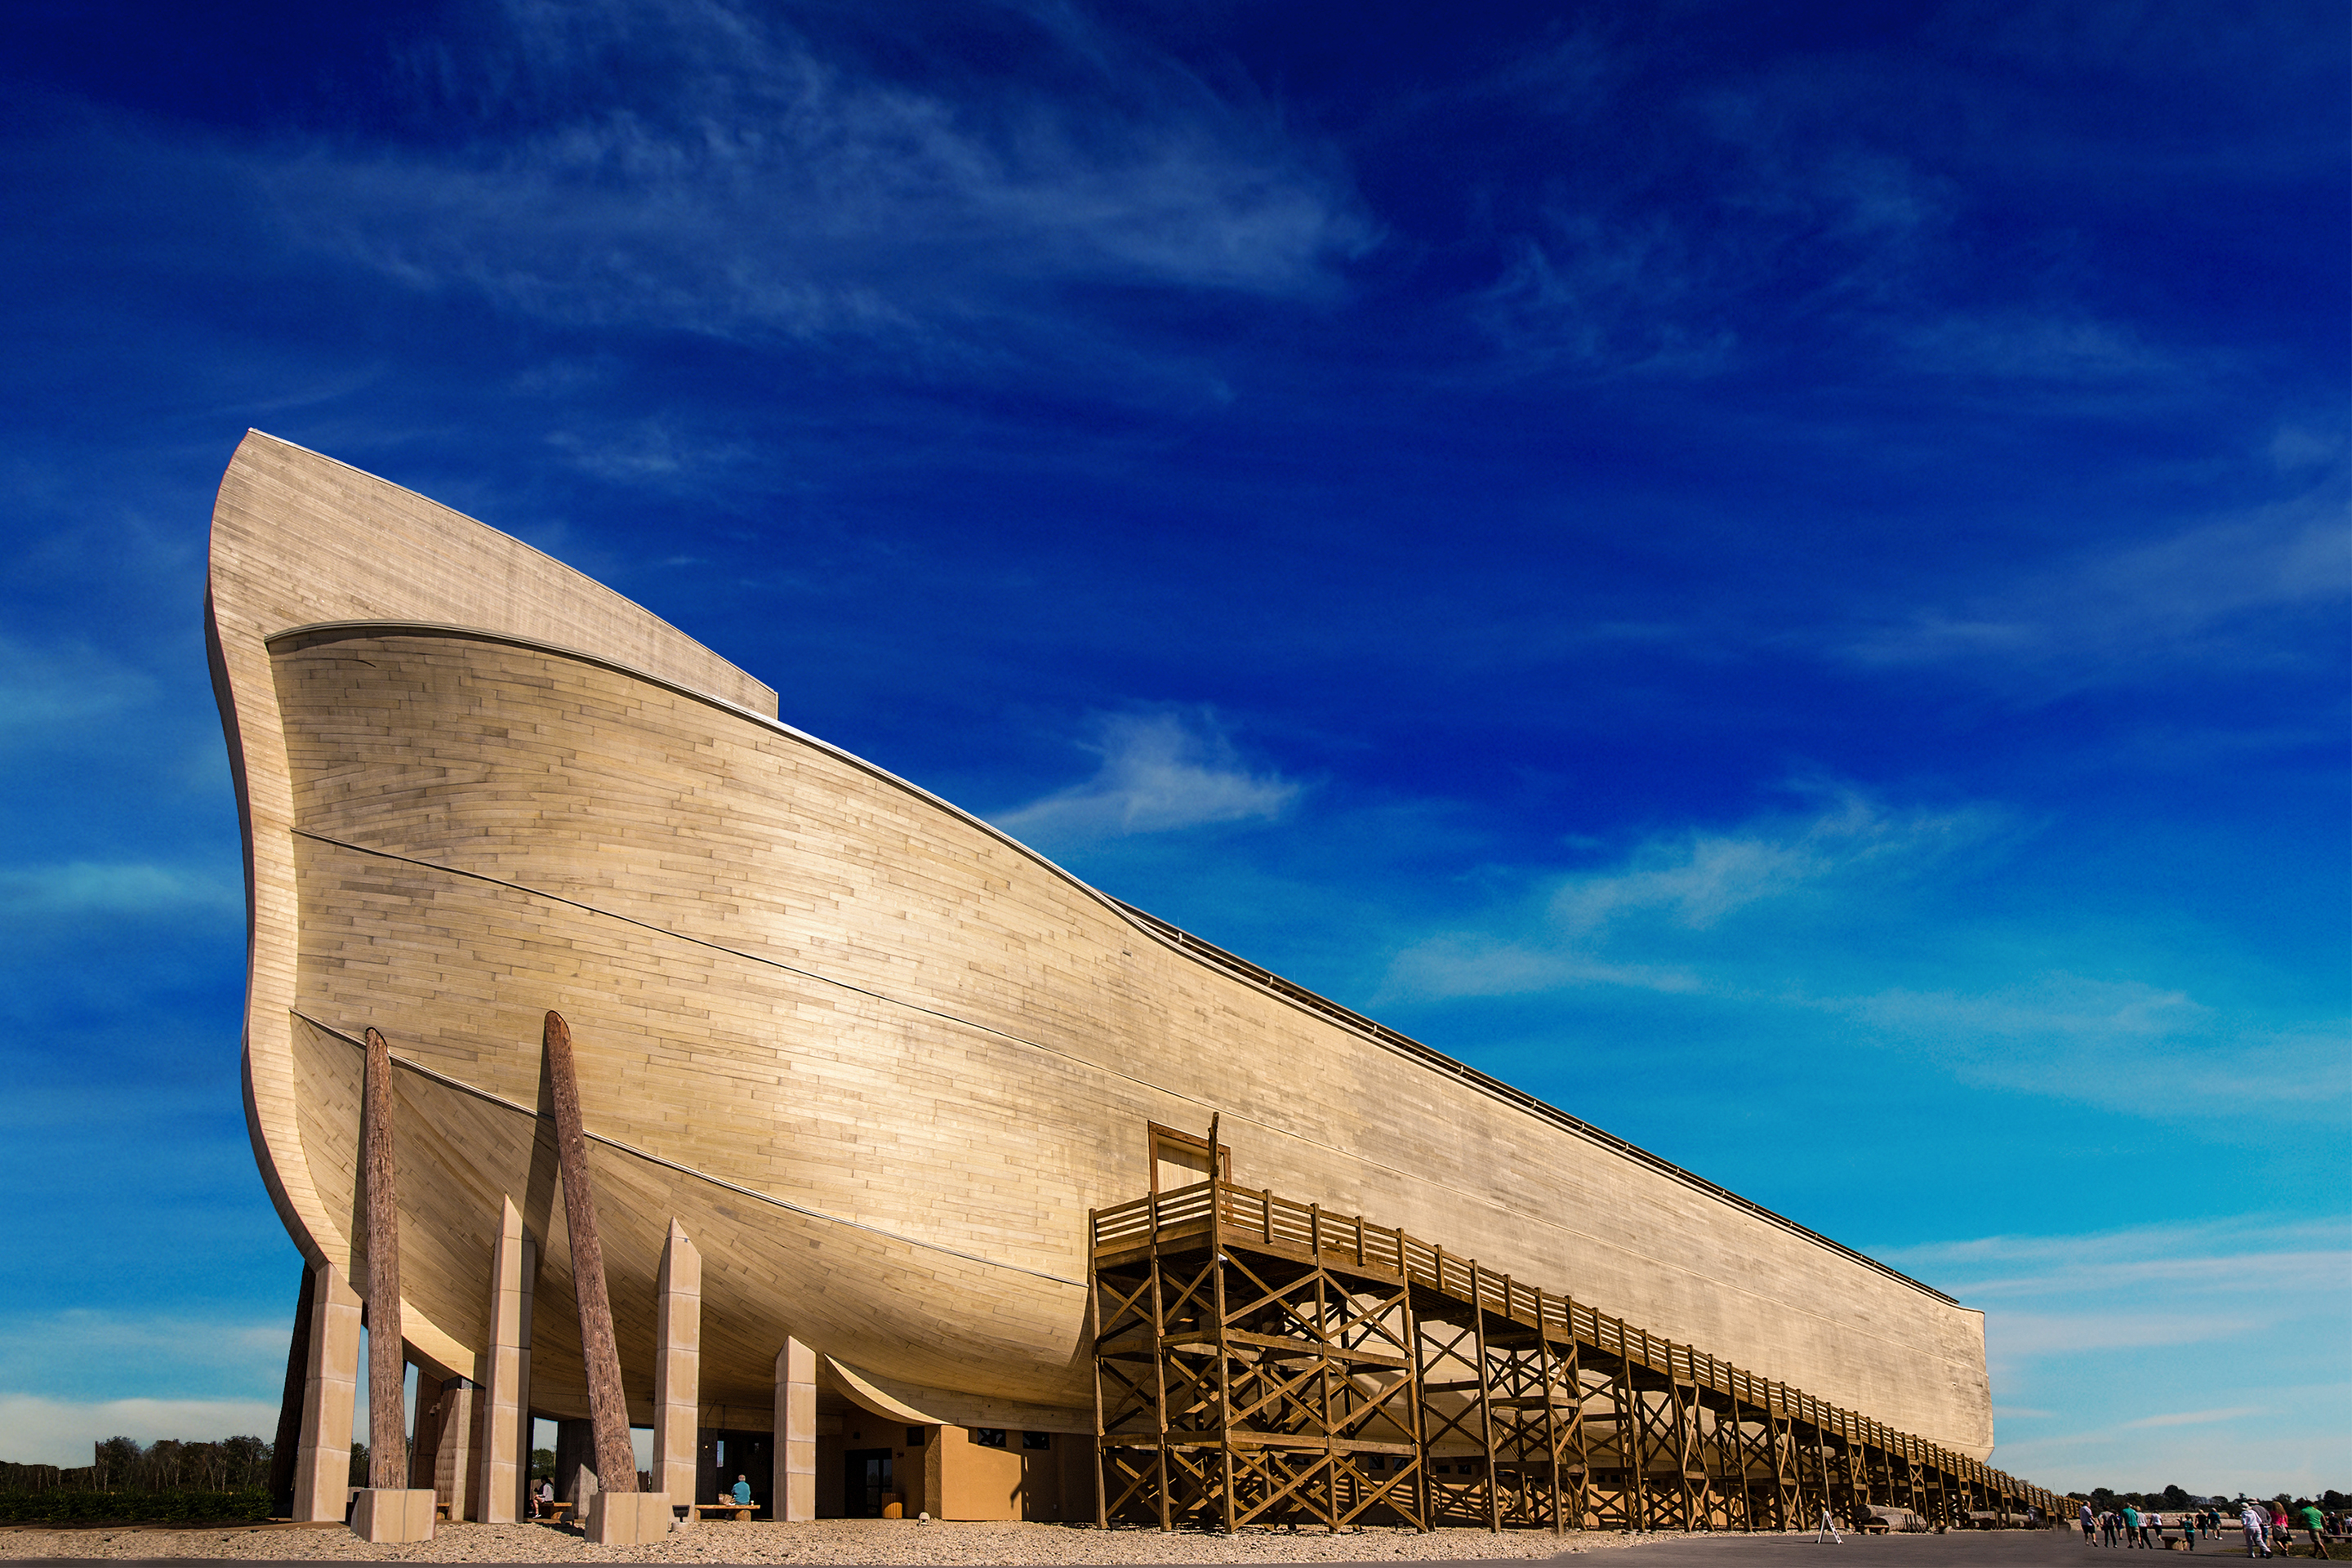 AiG's Ark Encounter, located 45 miles away in Grant County, Kentucky